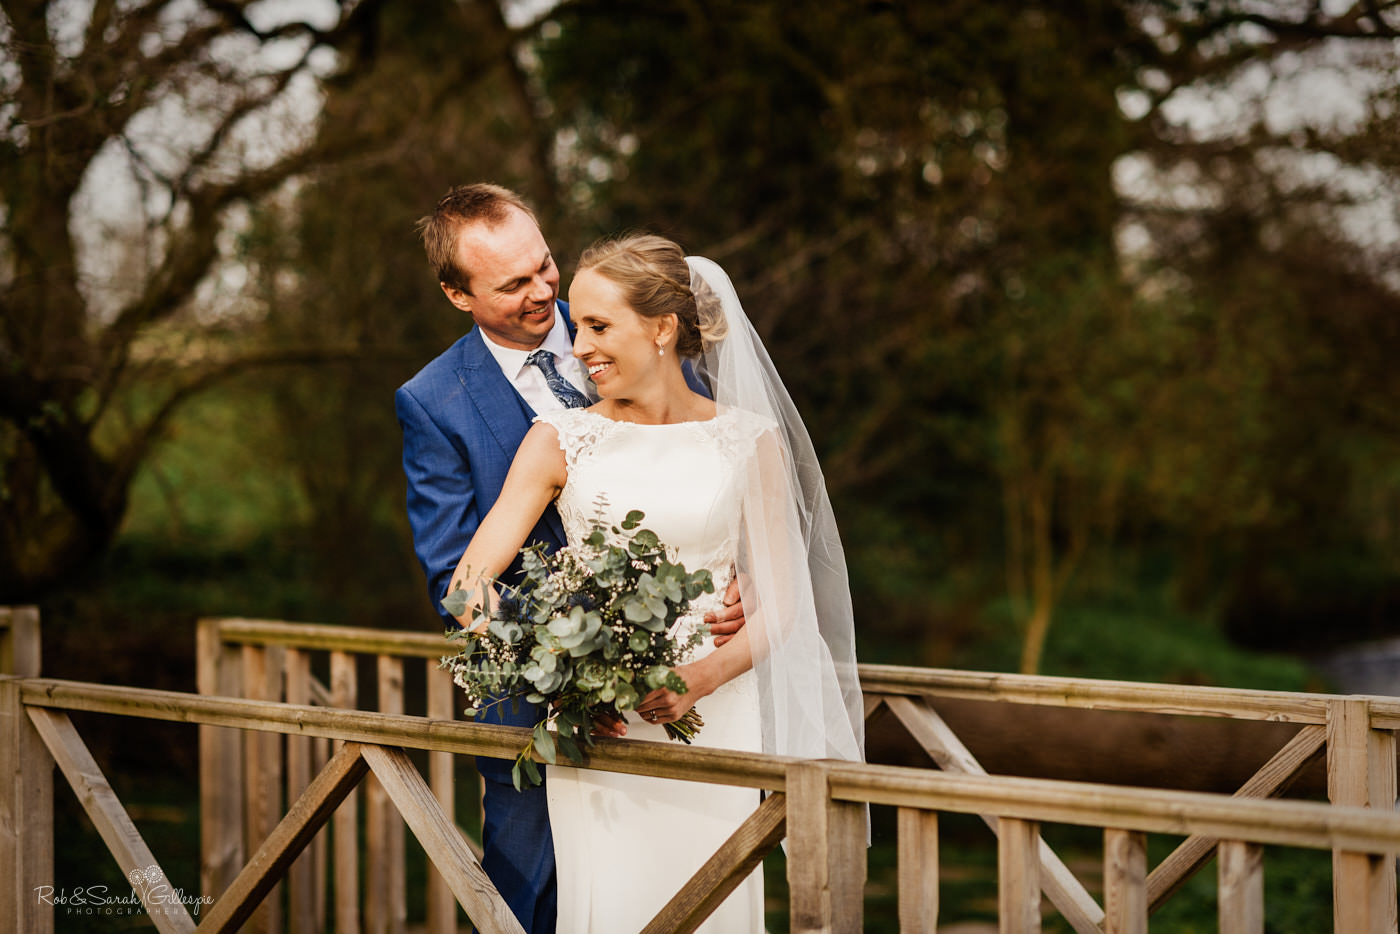 Bride and groom at Swallows Nest Barn wedding